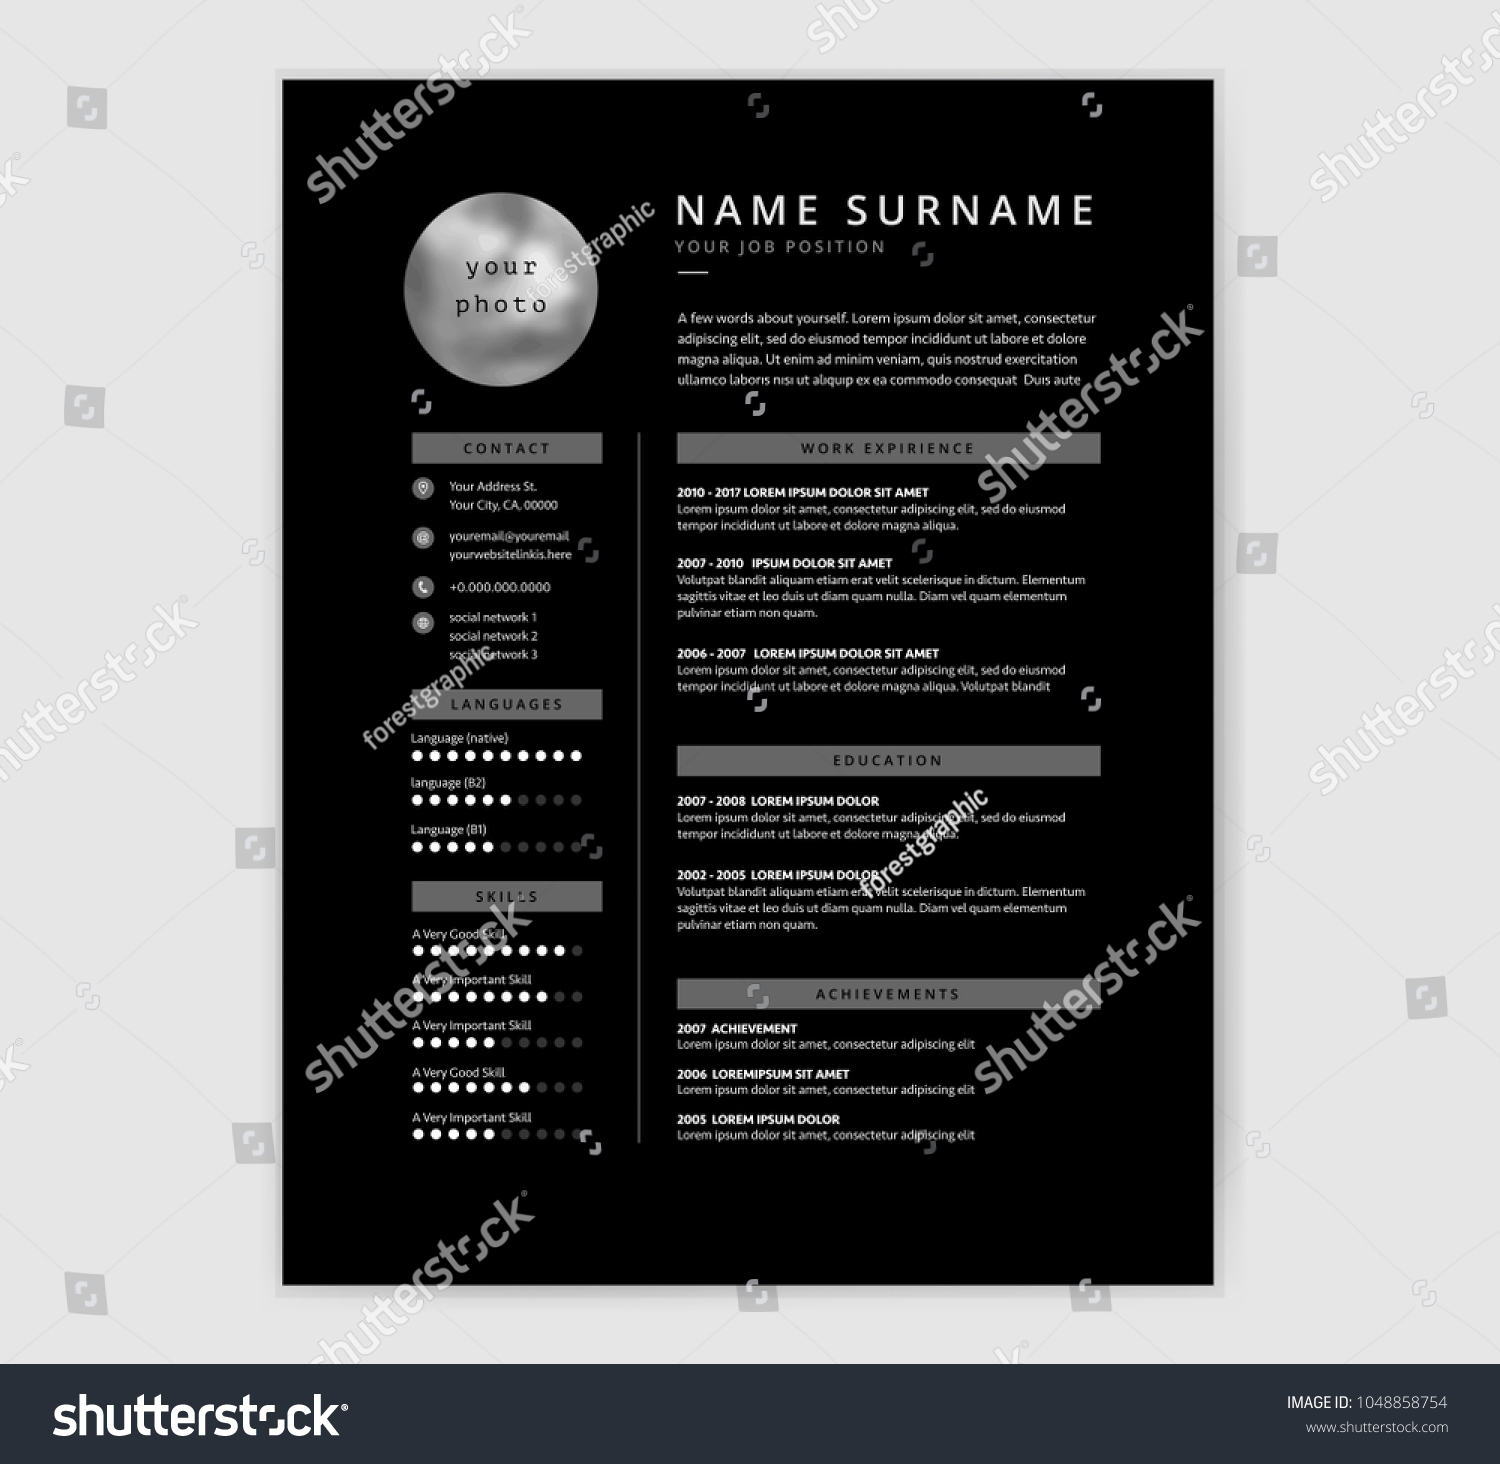 Cool Black Cv Resume Template Design Stock Vector Hd Royalty Free